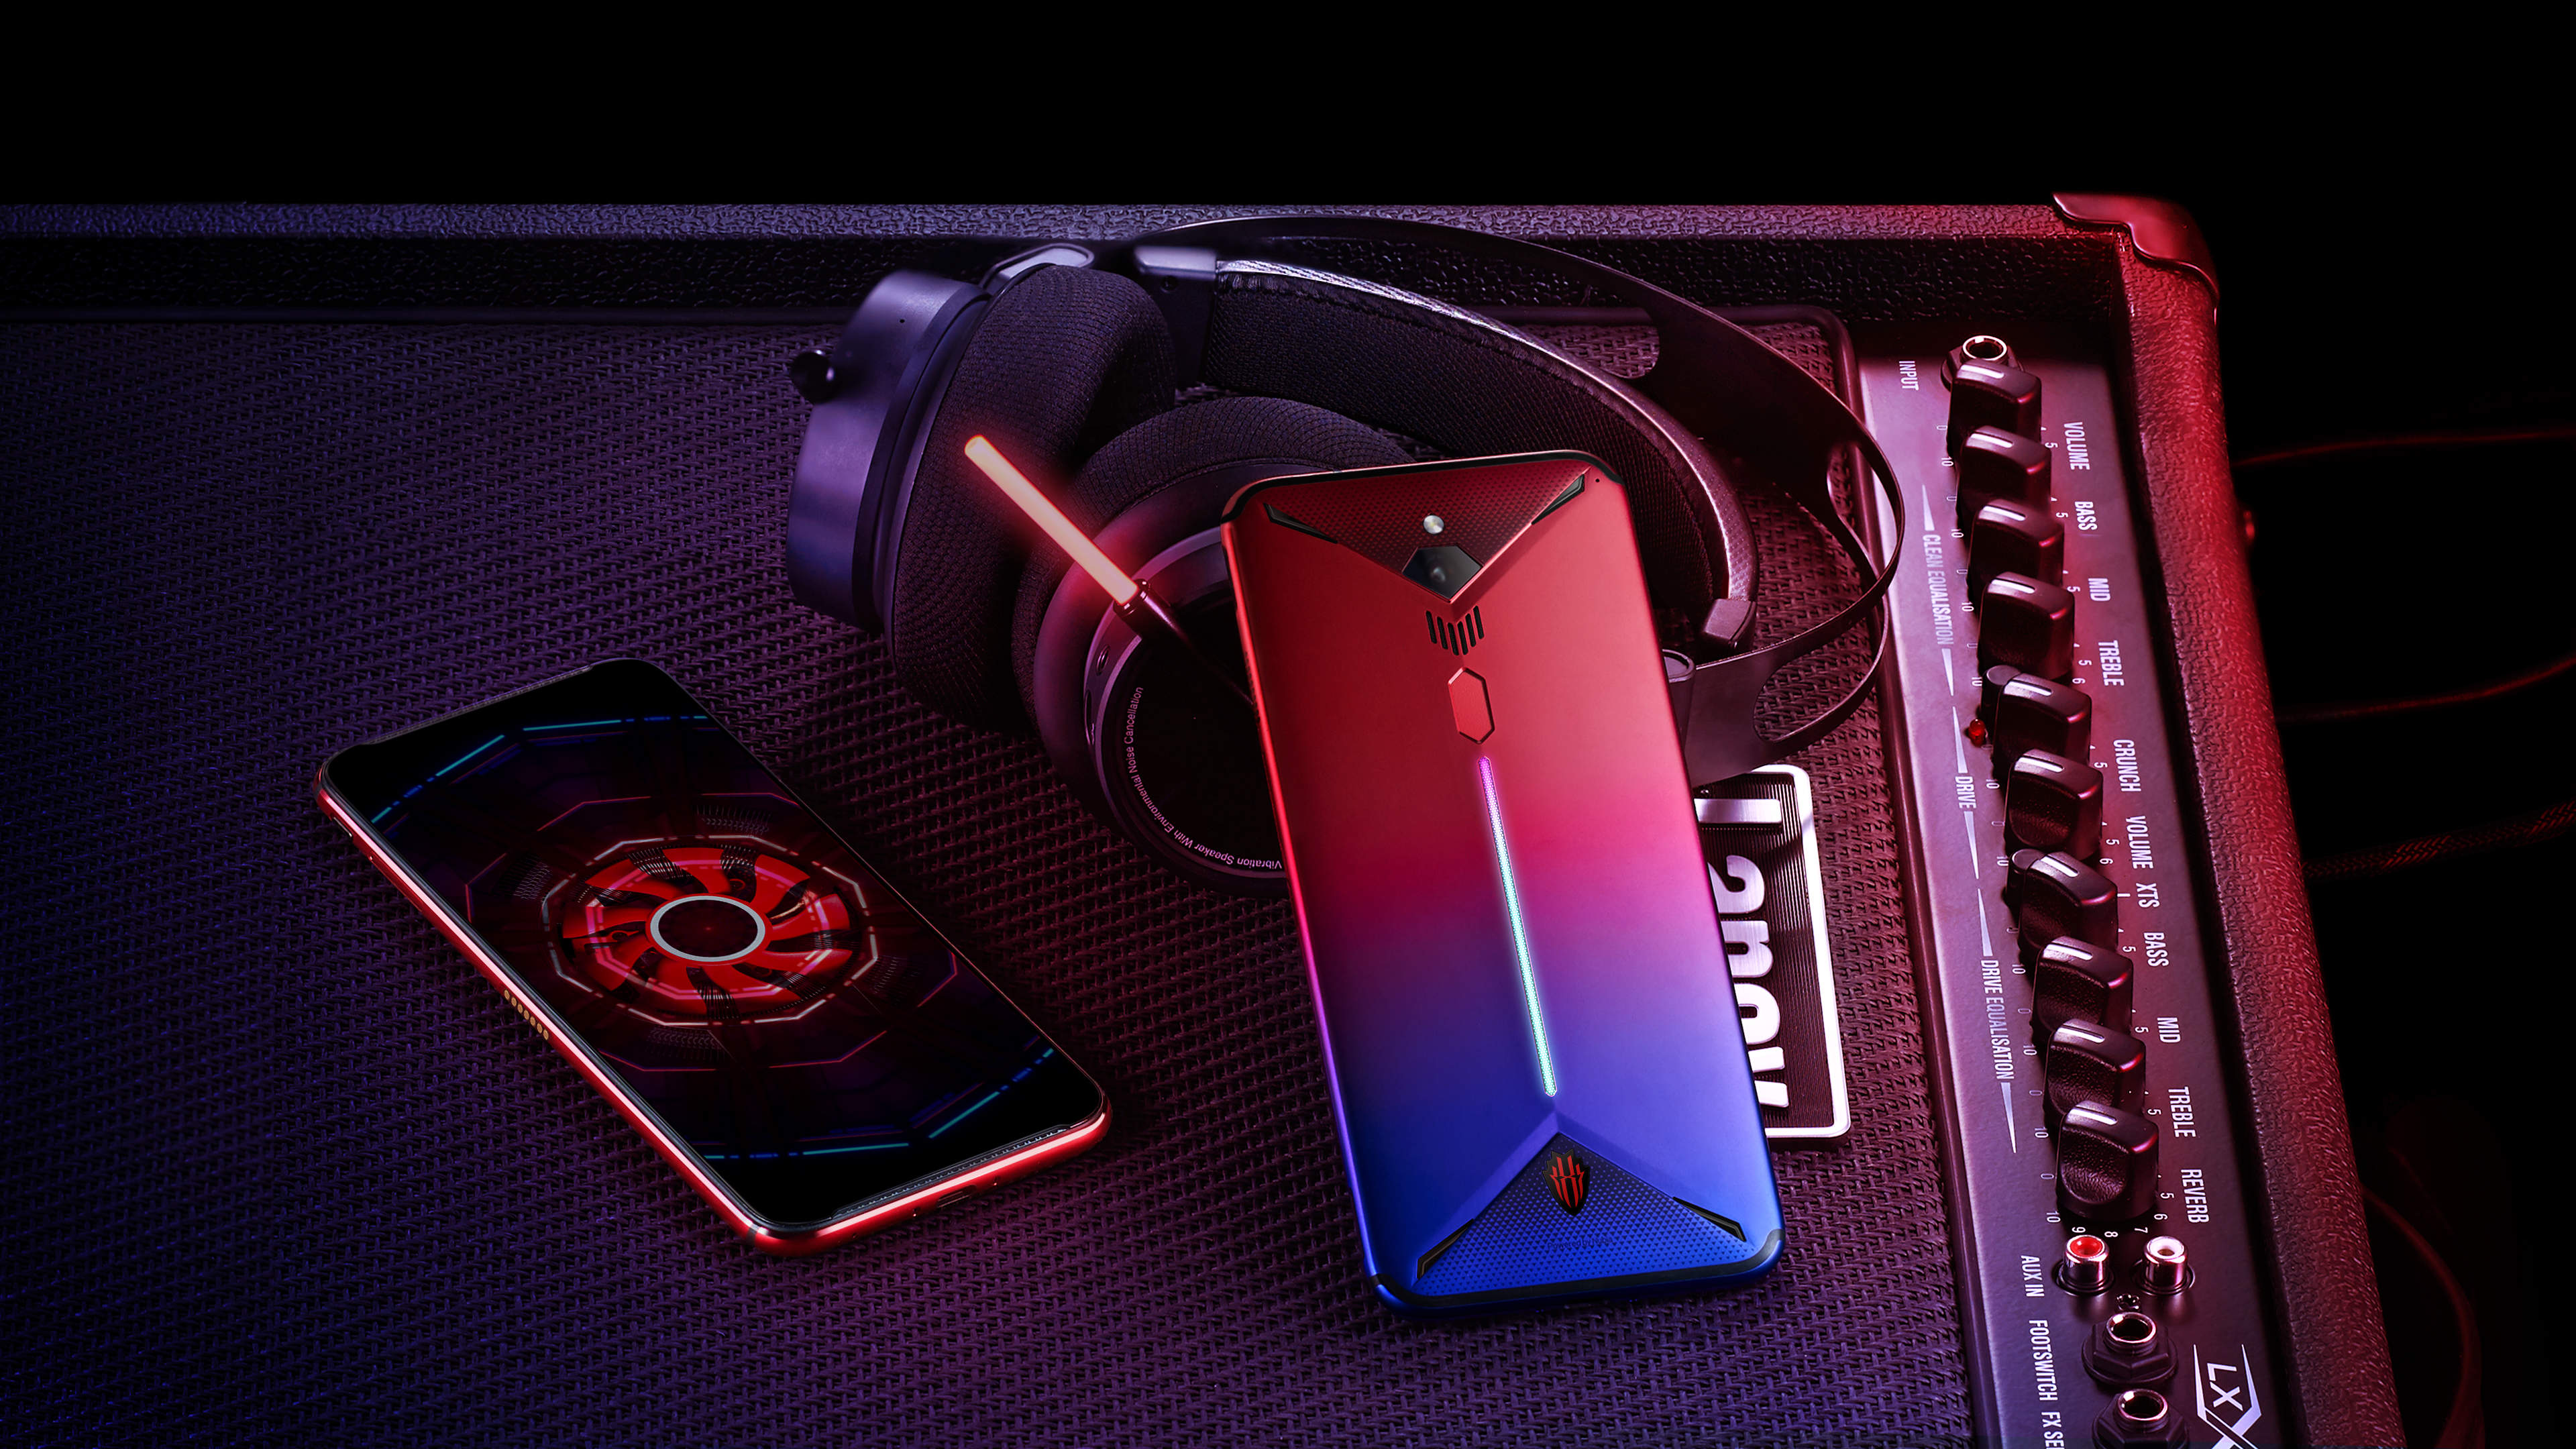 Nubia's new gaming phone comes with internal cooling